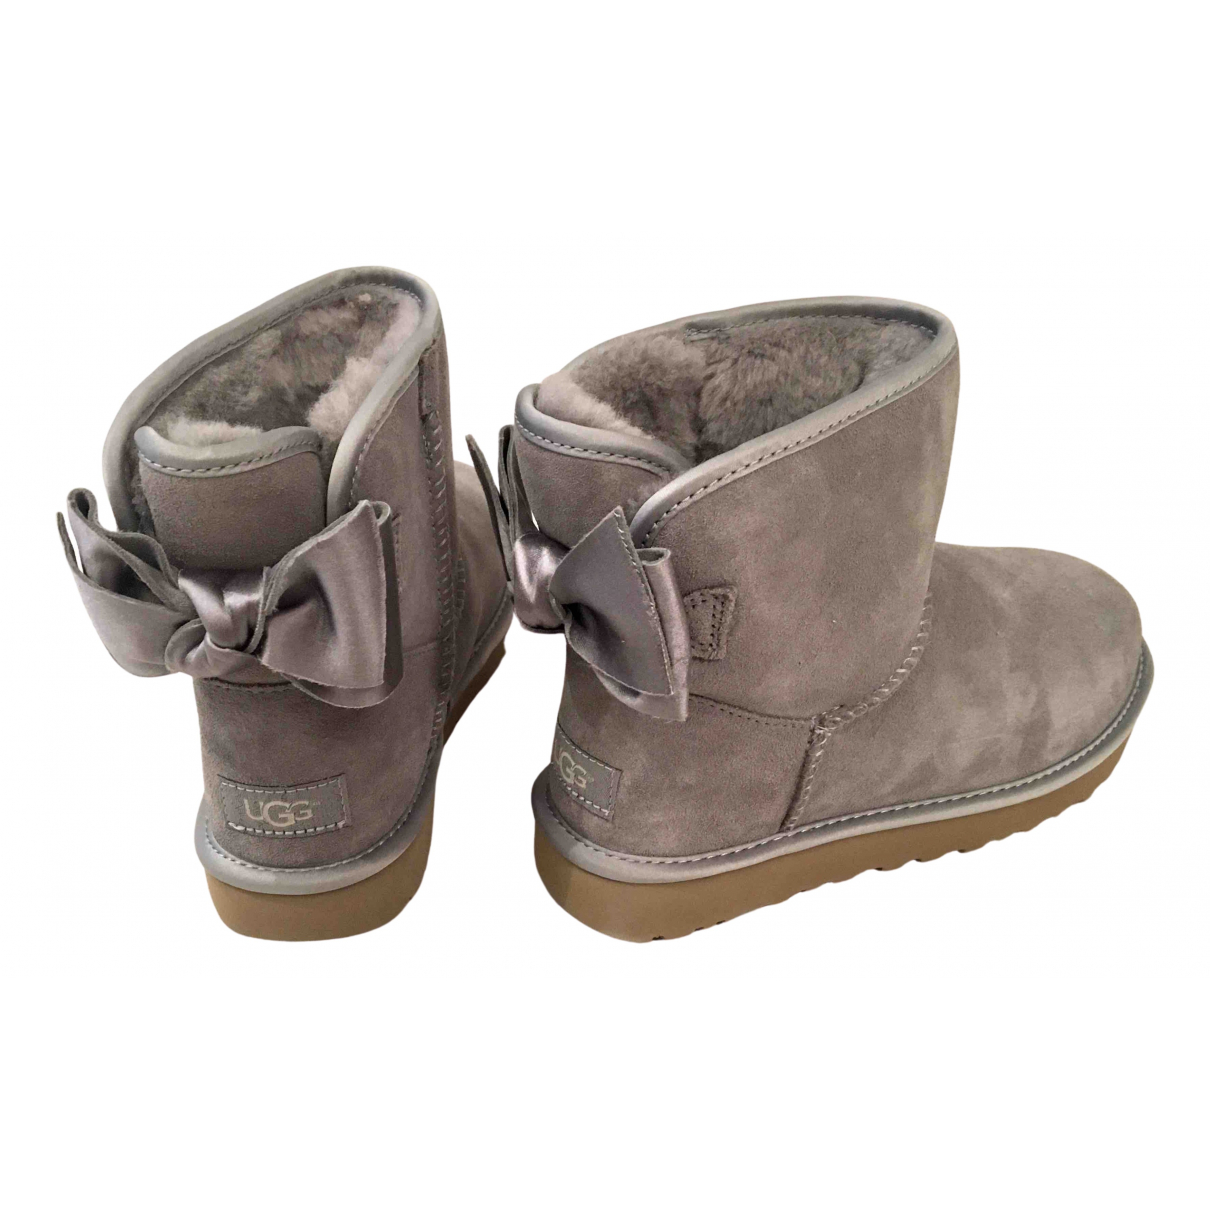 Ugg \N Grey Leather Boots for Women 6 UK